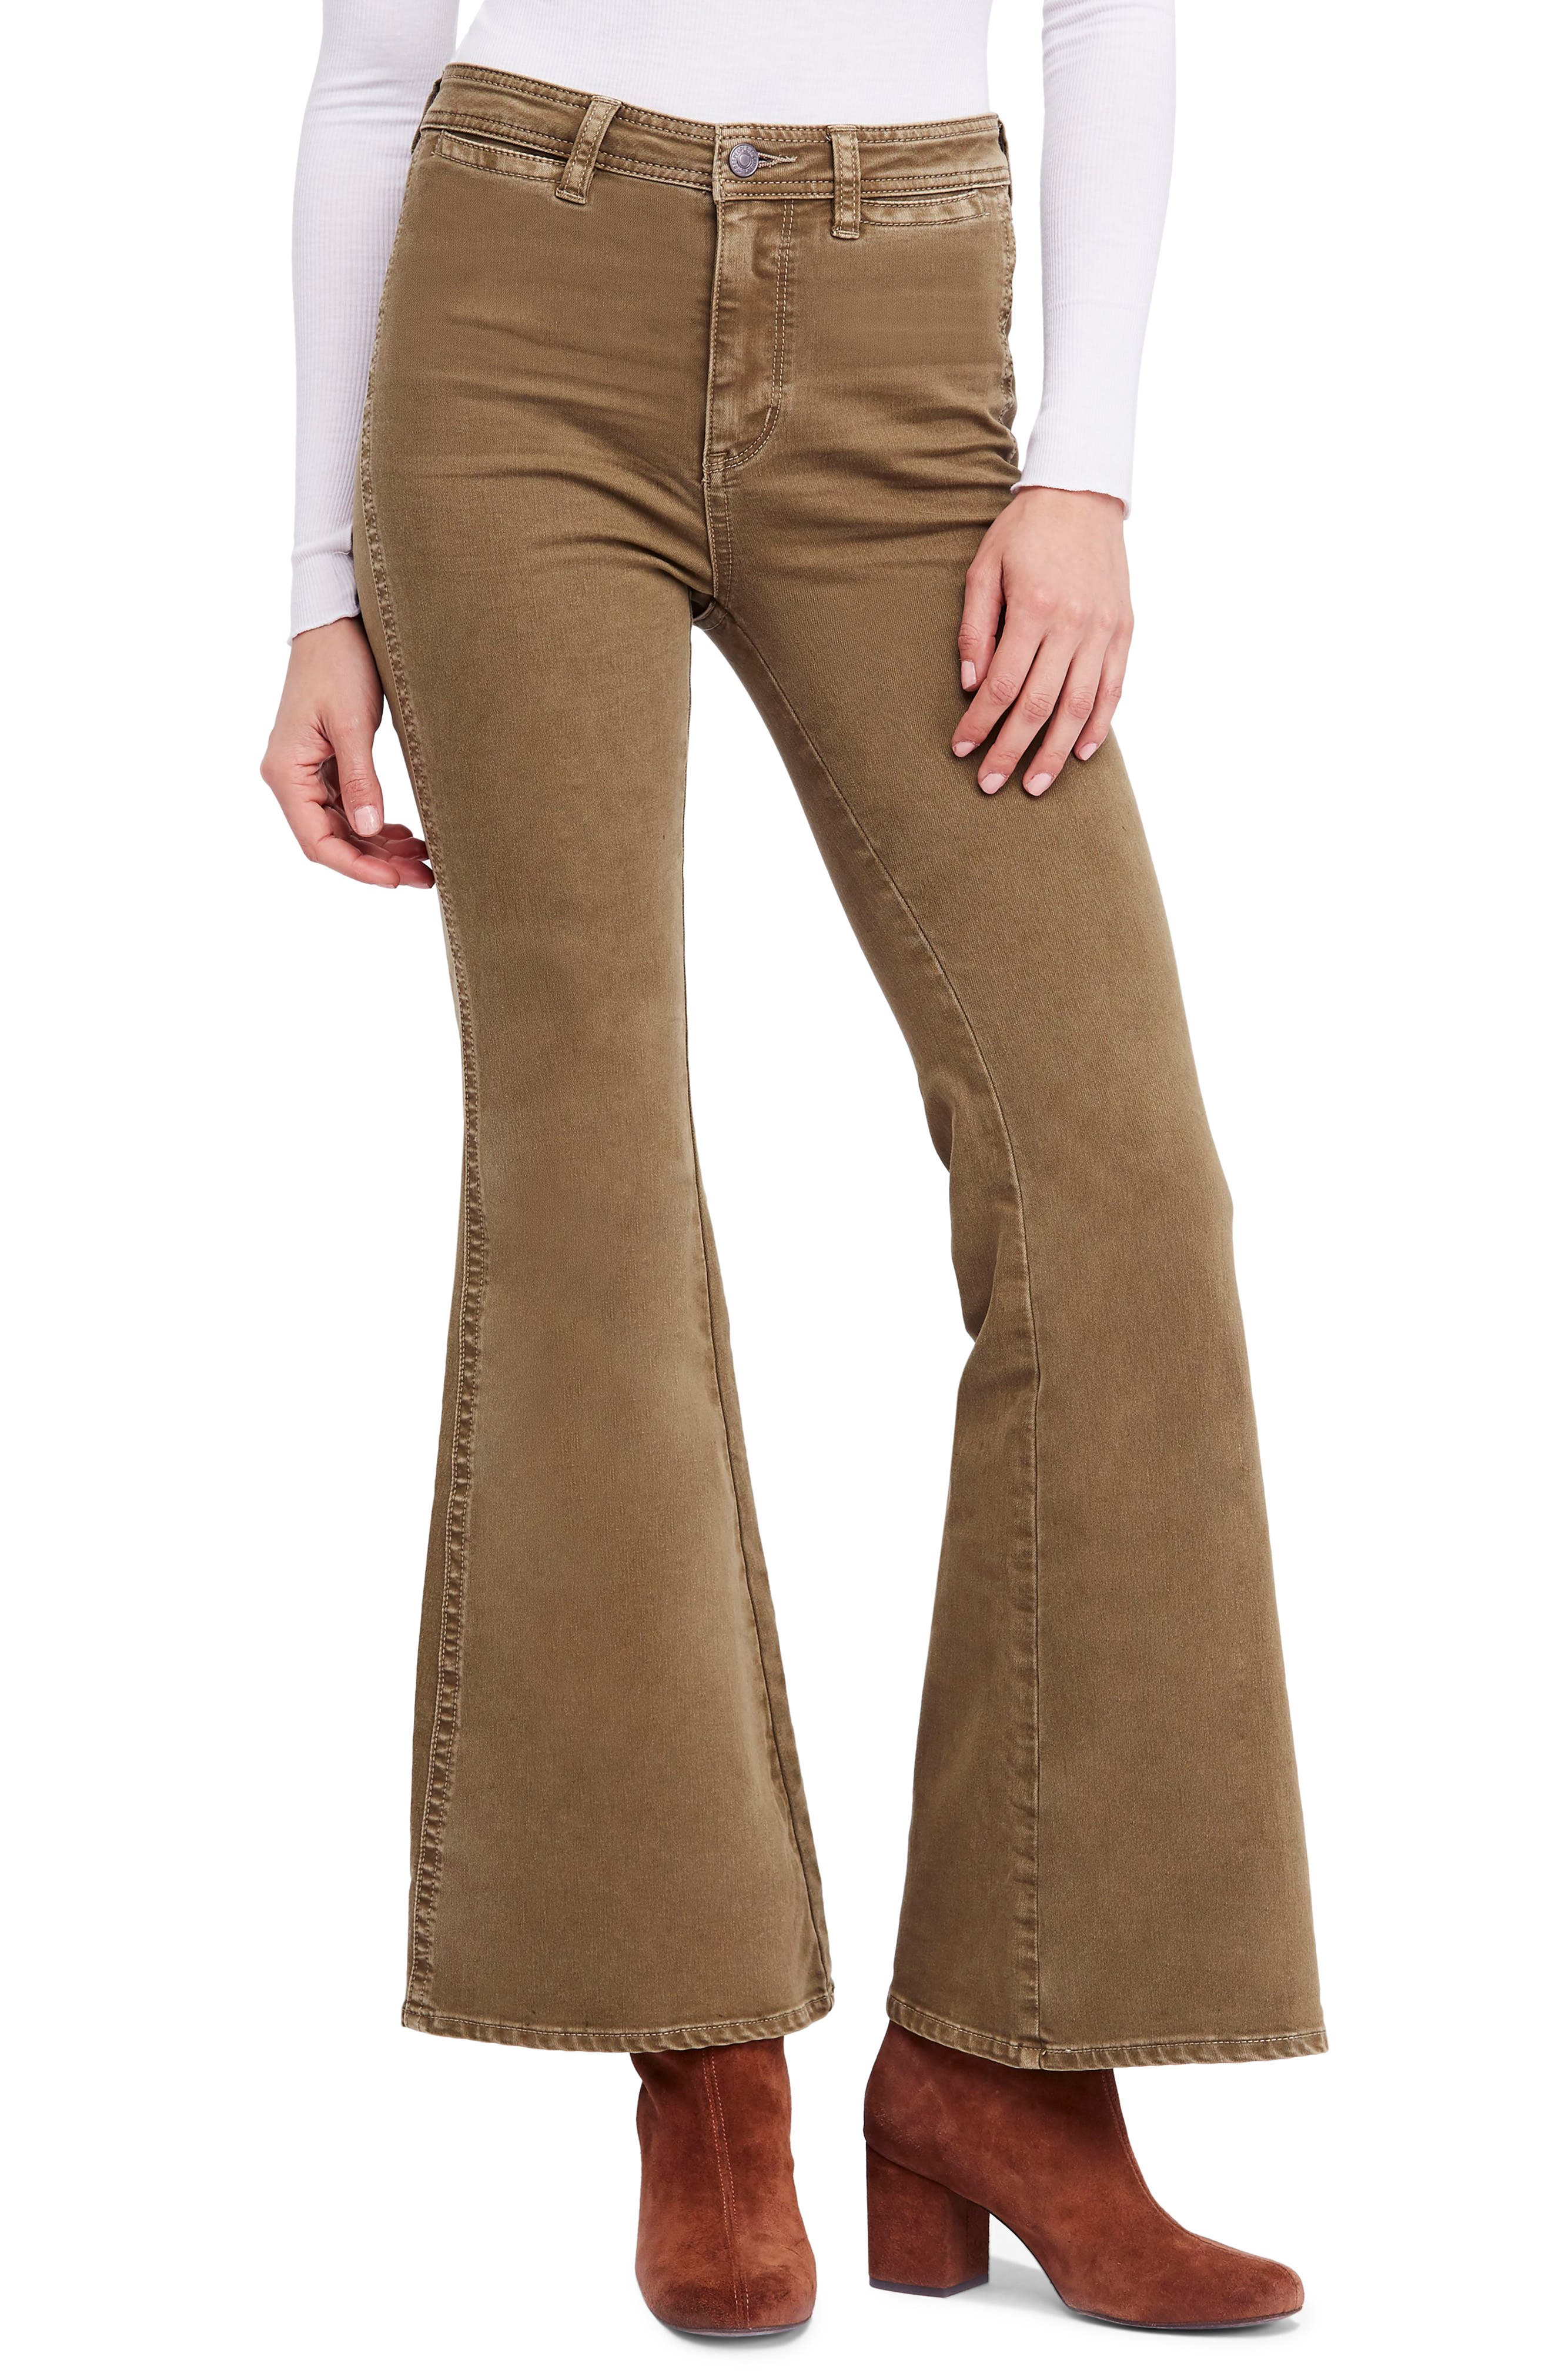 FREE PEOPLE Brooke Flare Jeans, Main, color, 200